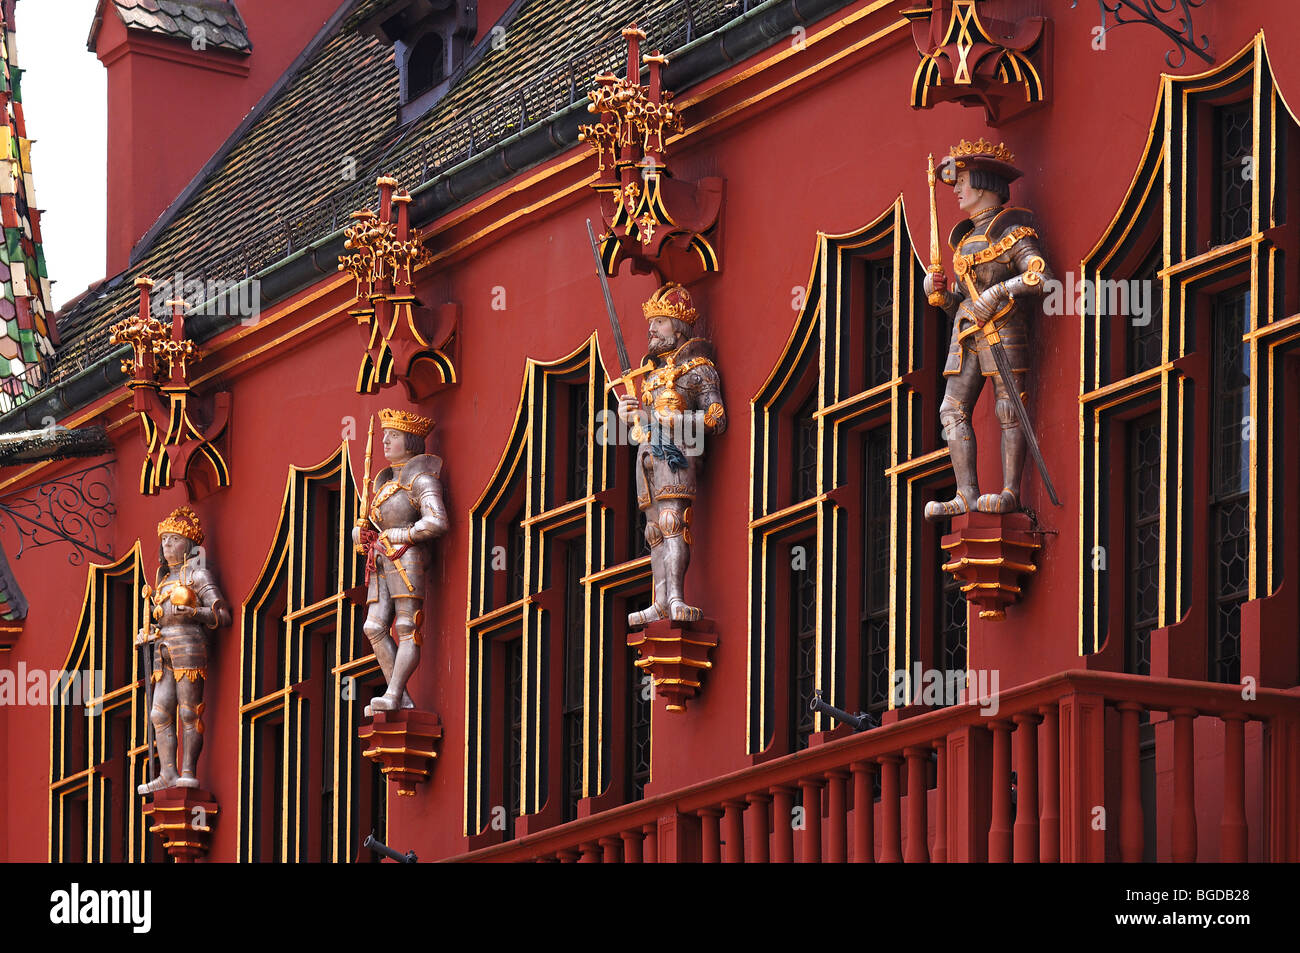 Figures of the 'Four Habsburg rulers' on the Historisches Kaufhaus historical department store, 1520, 24 - Stock Image